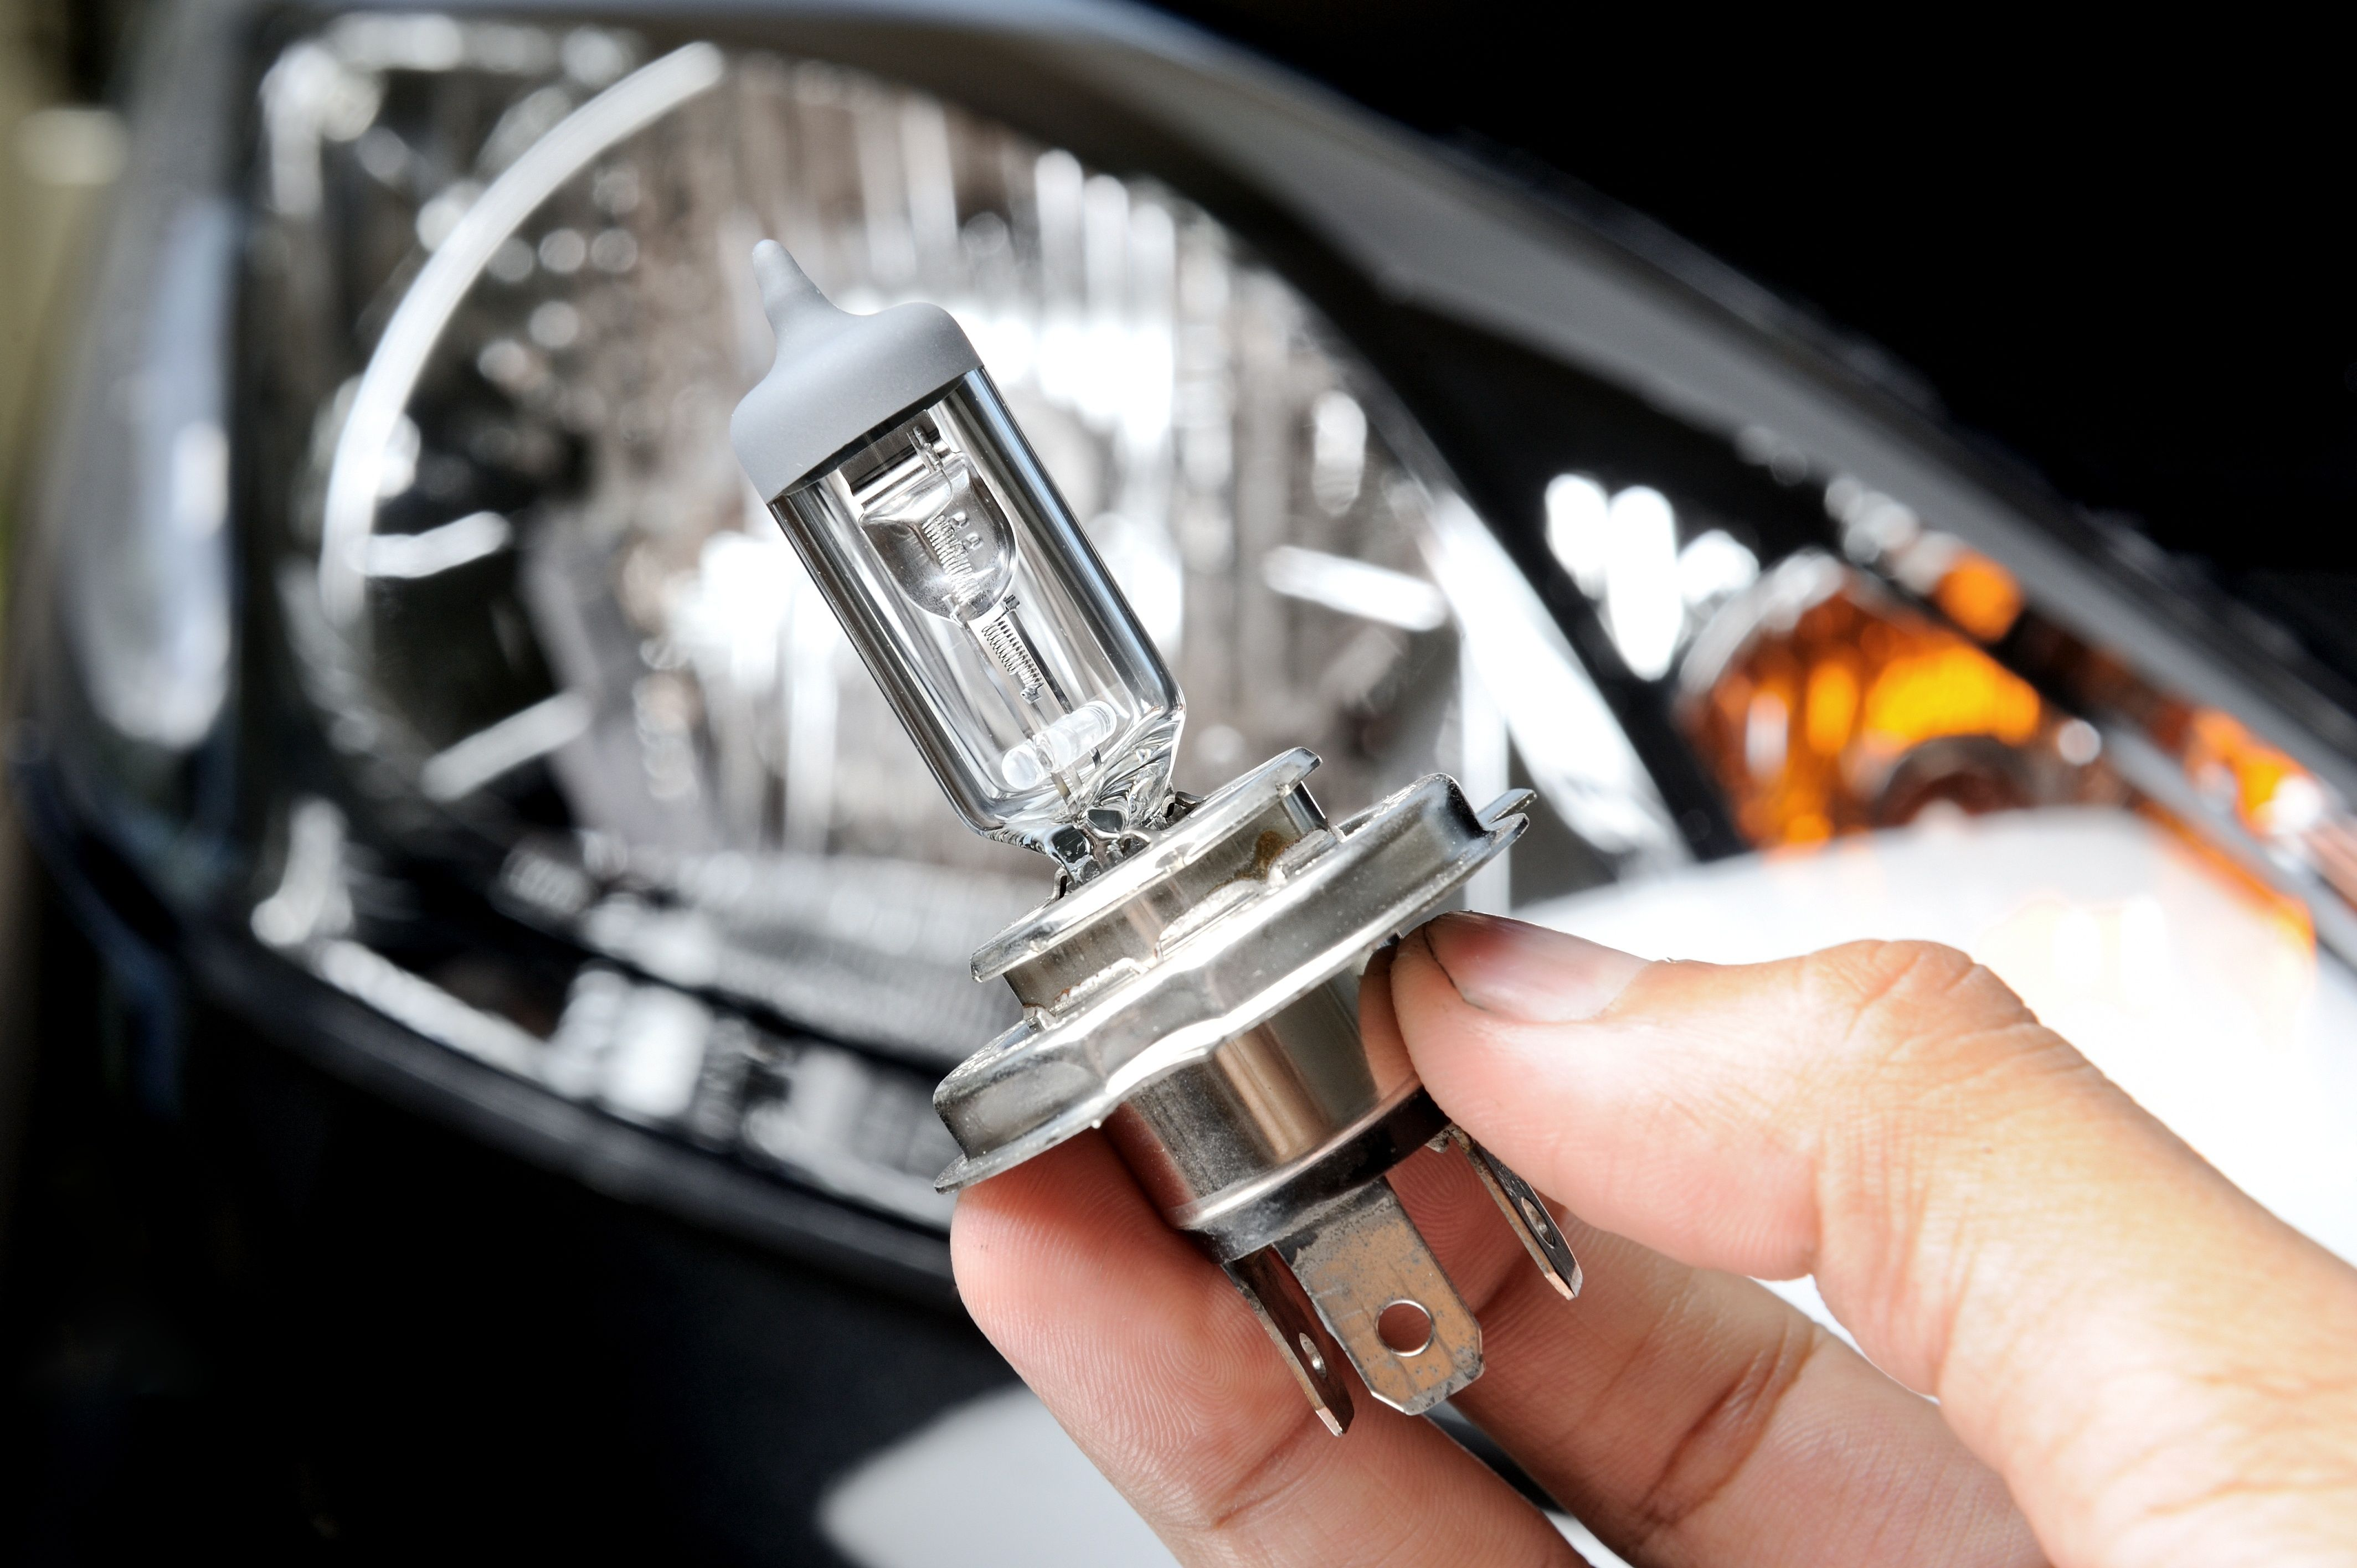 Aftermarket Replacement Car Parts In 2020 Headlight Repair How To Clean Headlights Car Headlights